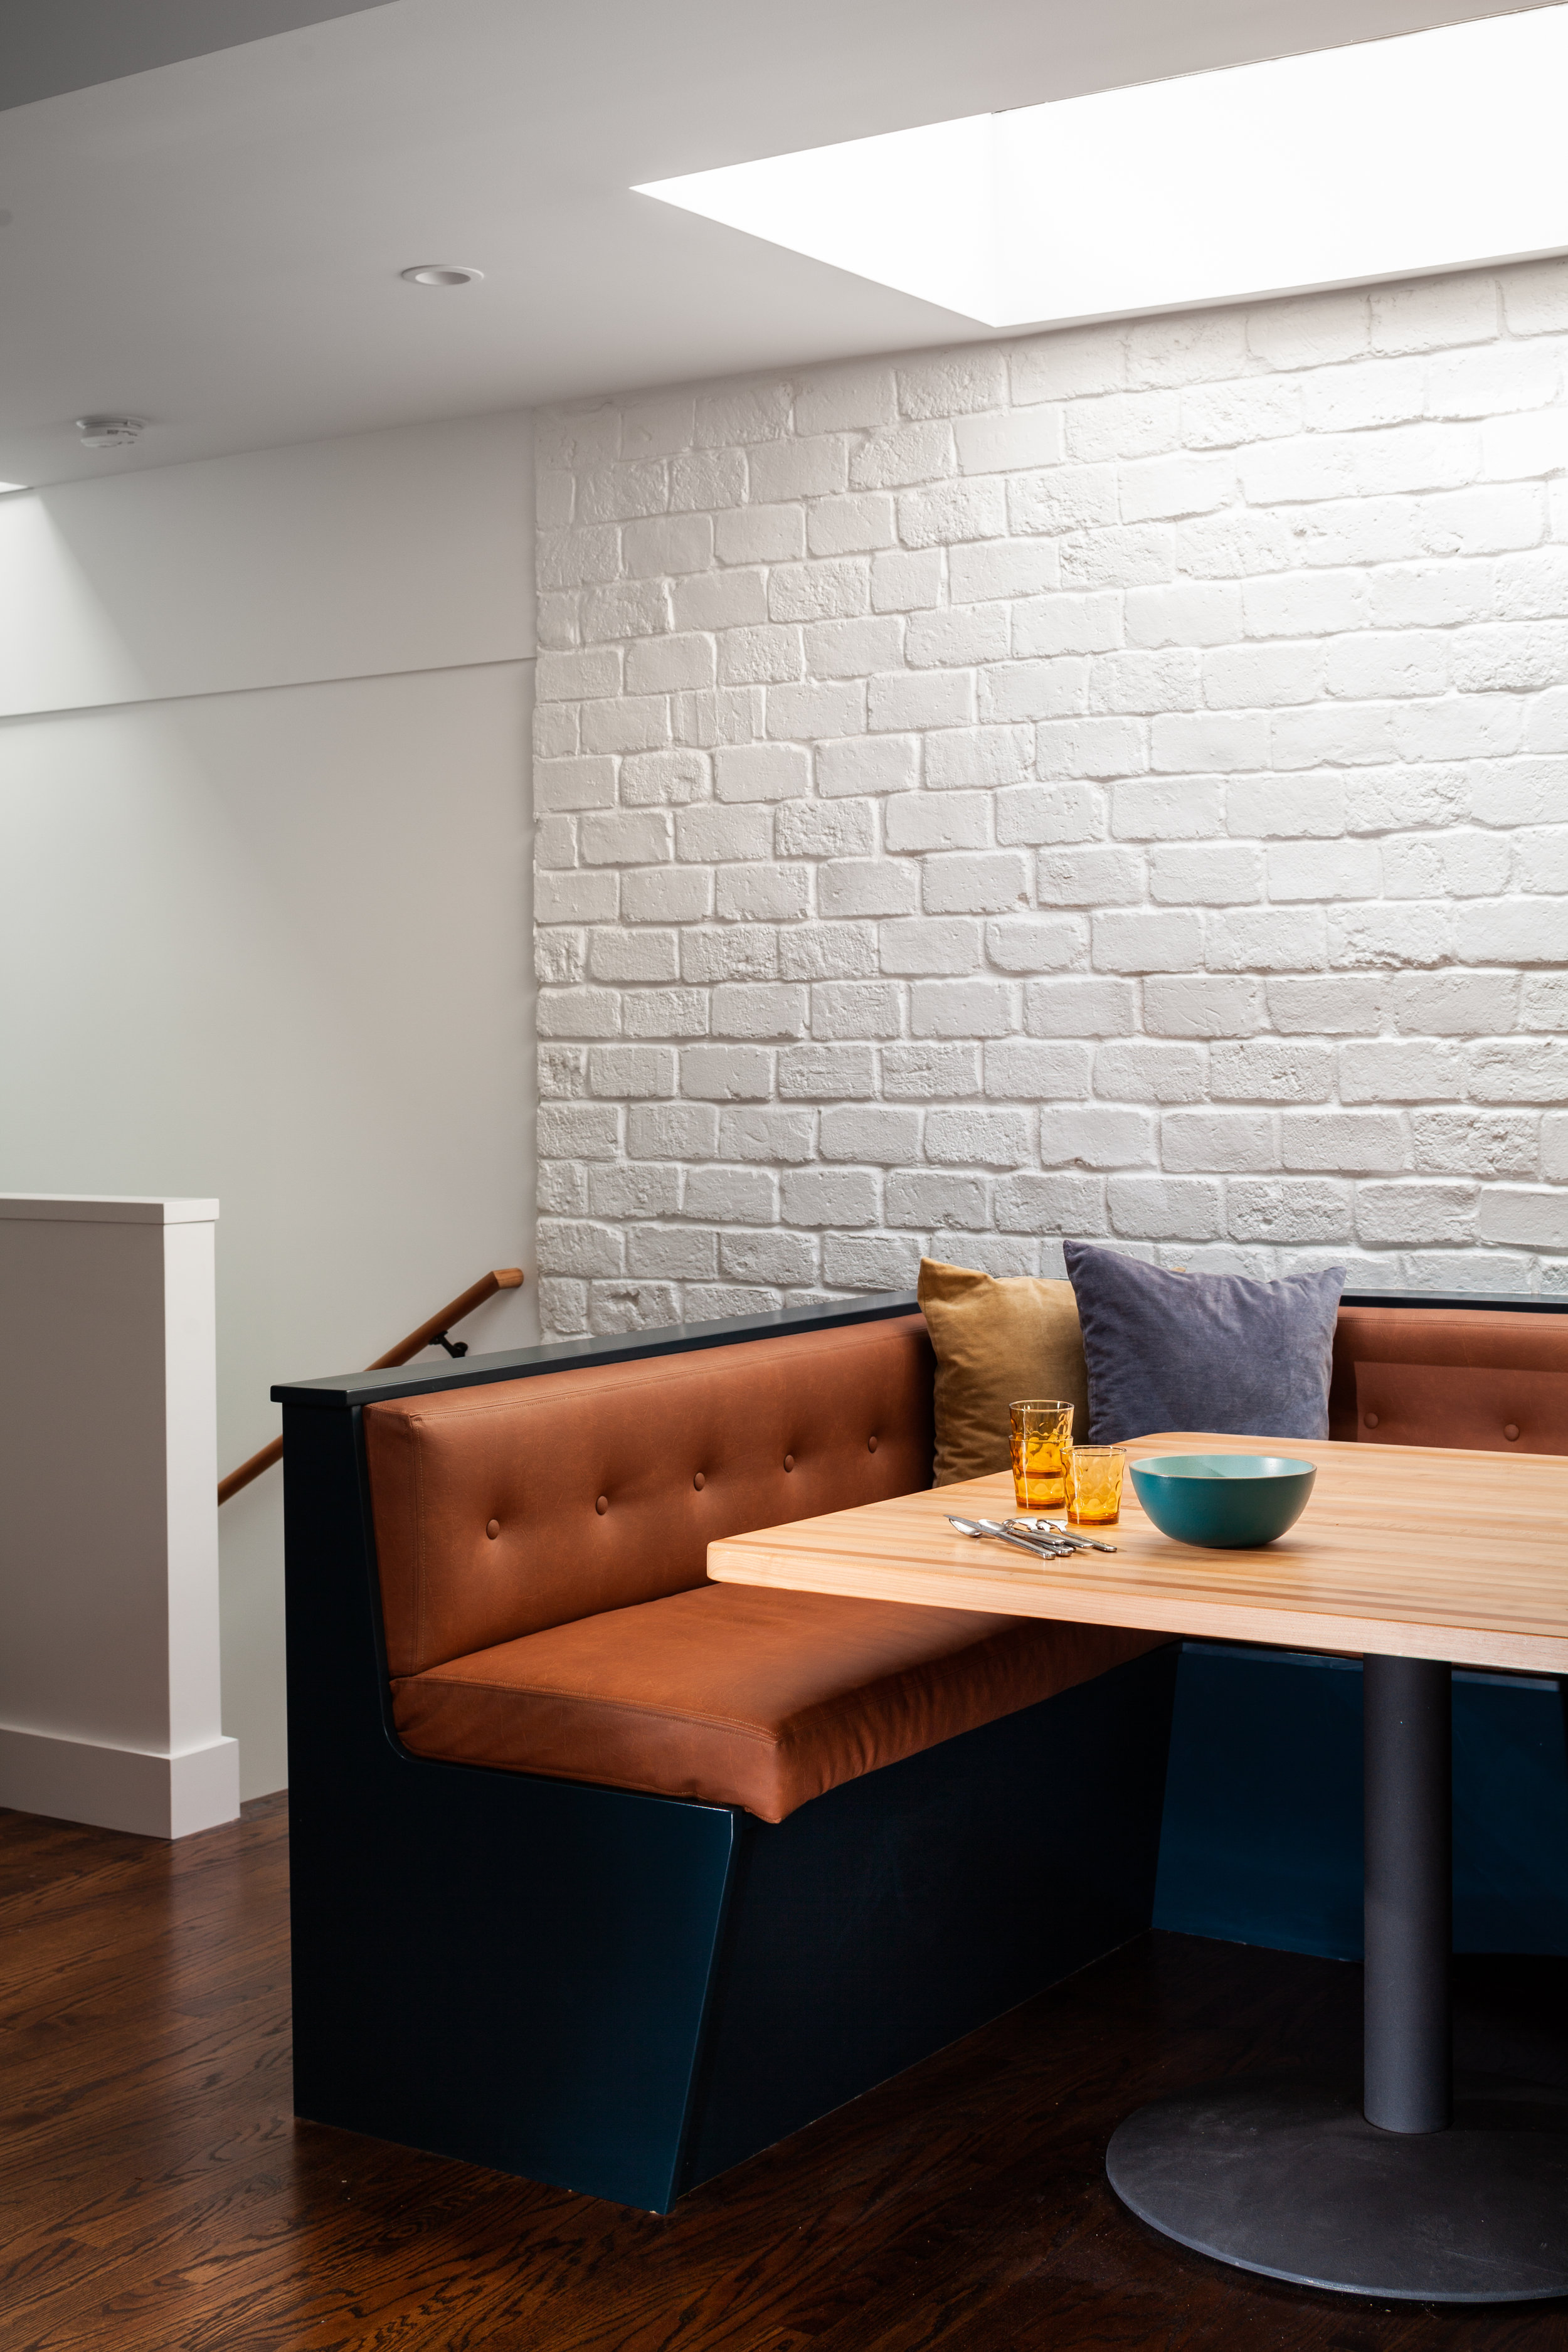 Banquette seating area.